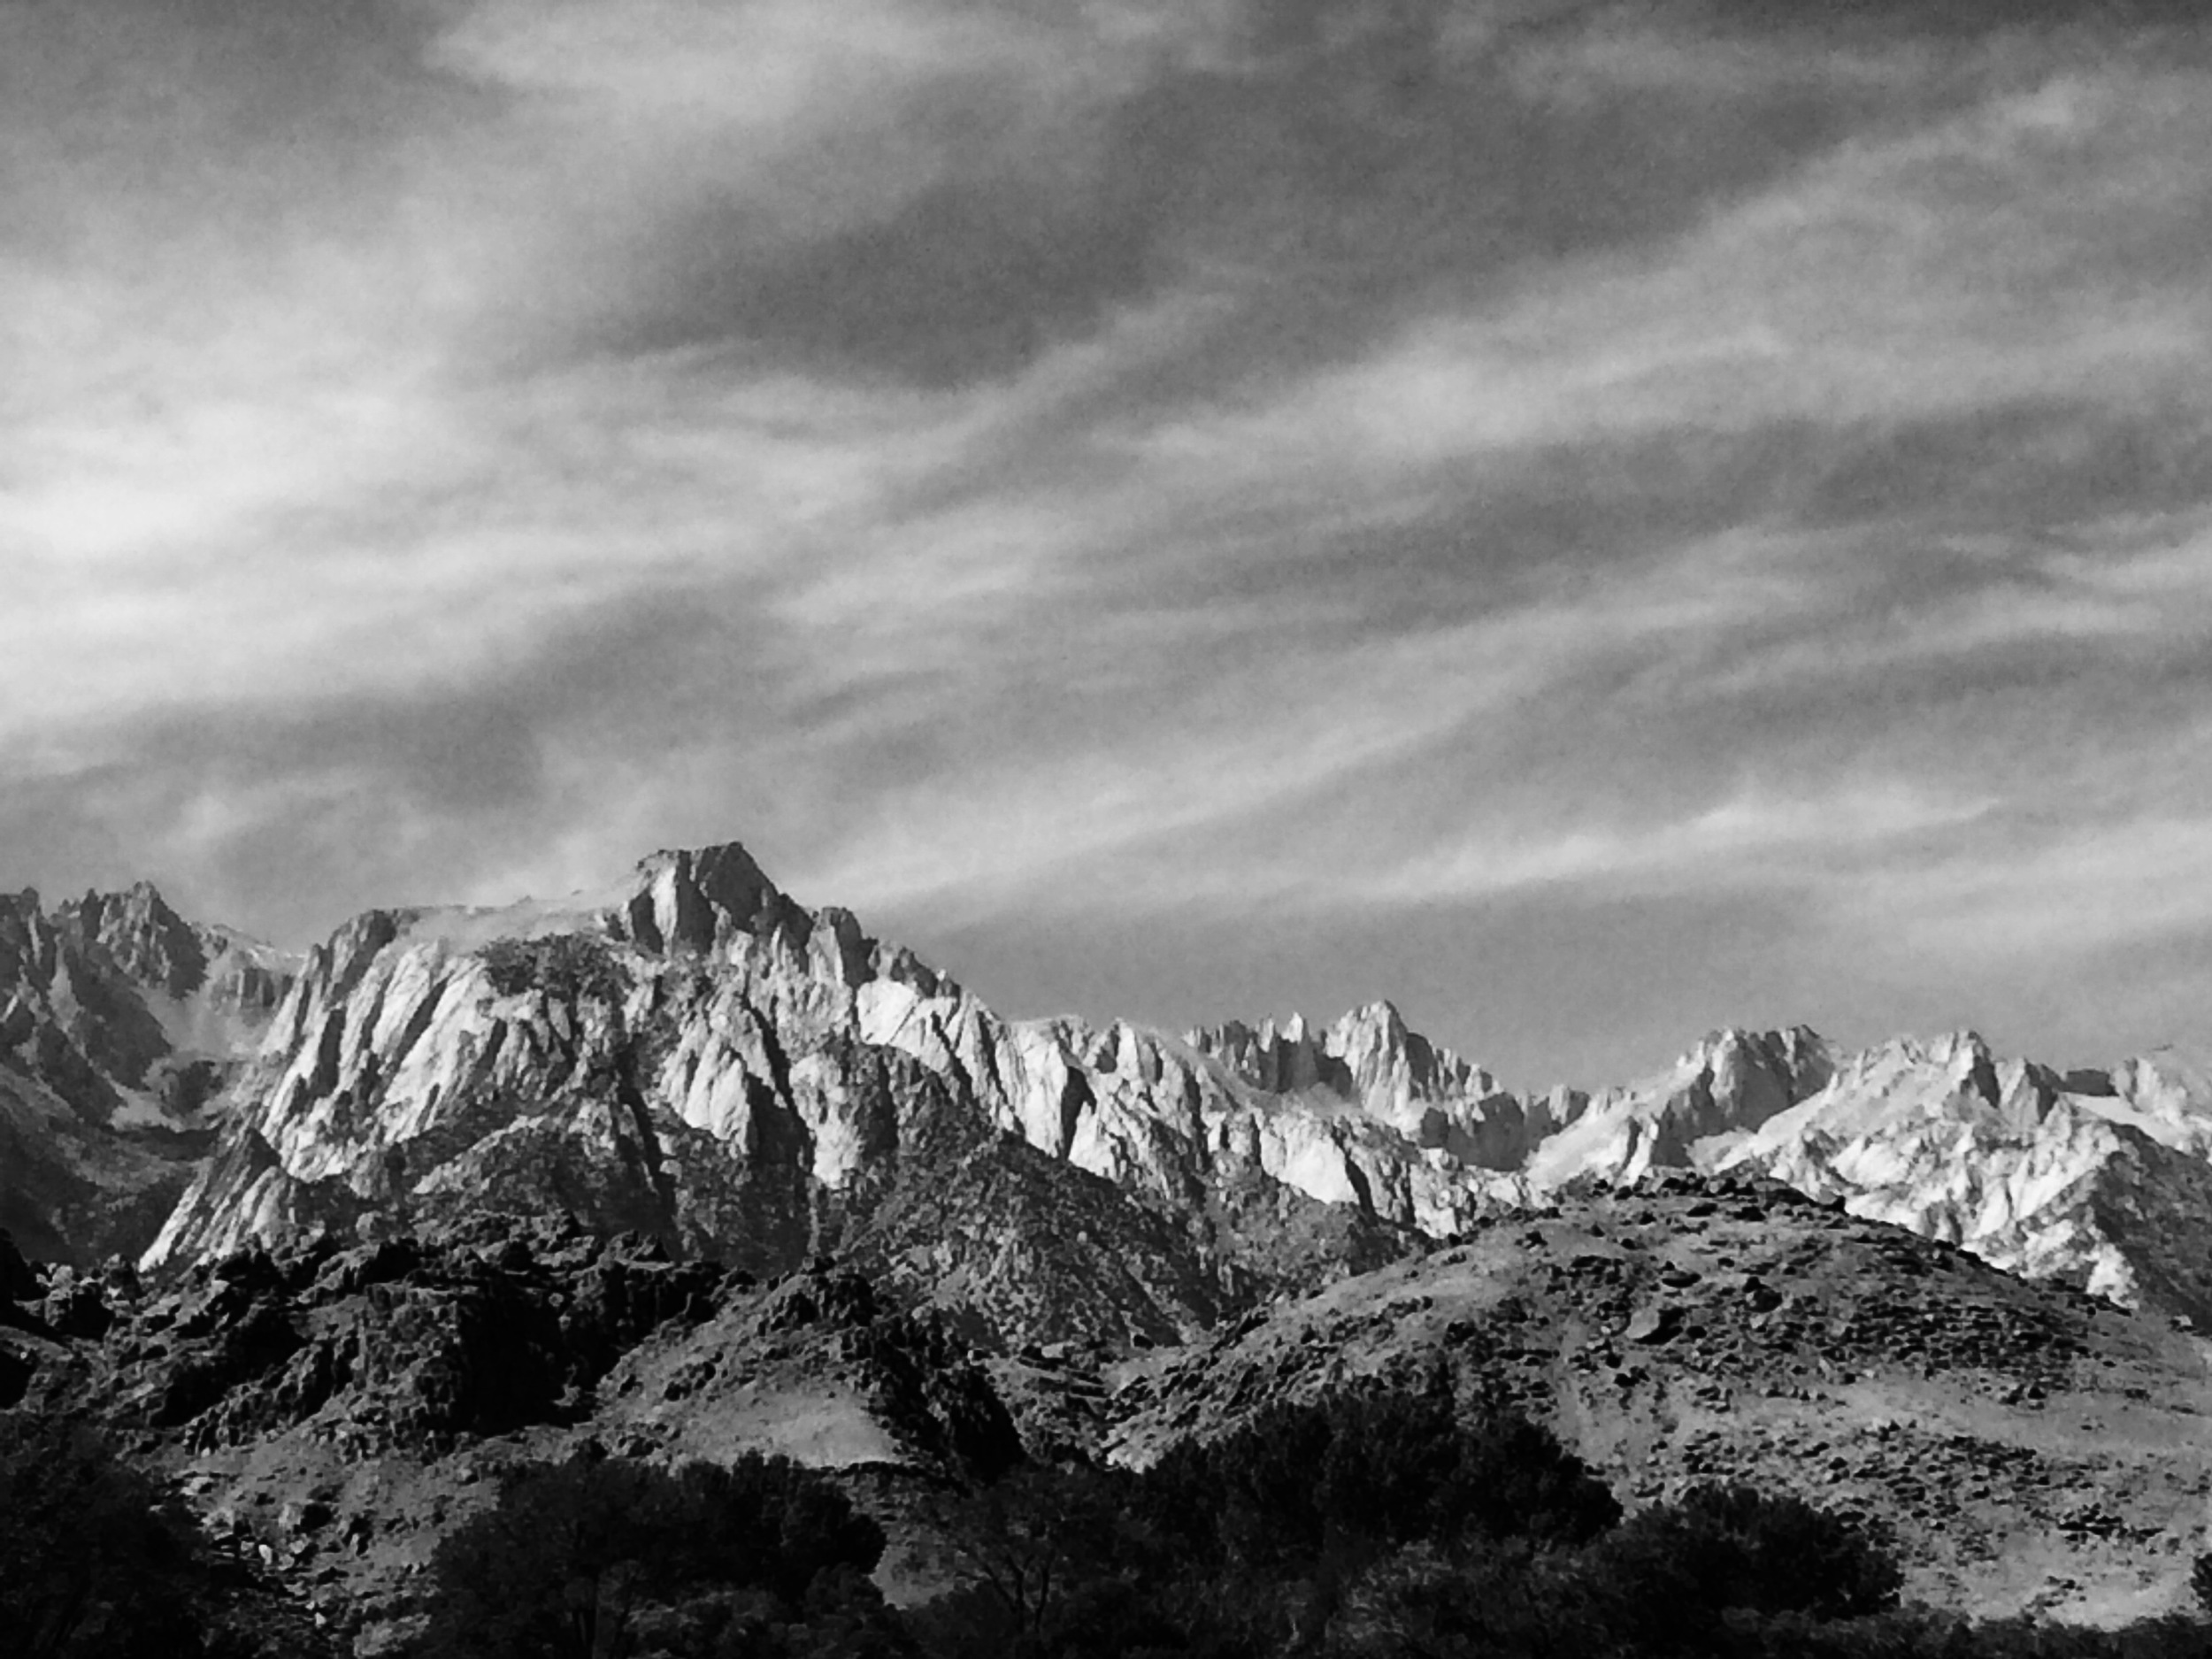 Mt. Whitney as seen from the Interagency Visitor Center in Lone Pine, where hikers go to pick up their permits.